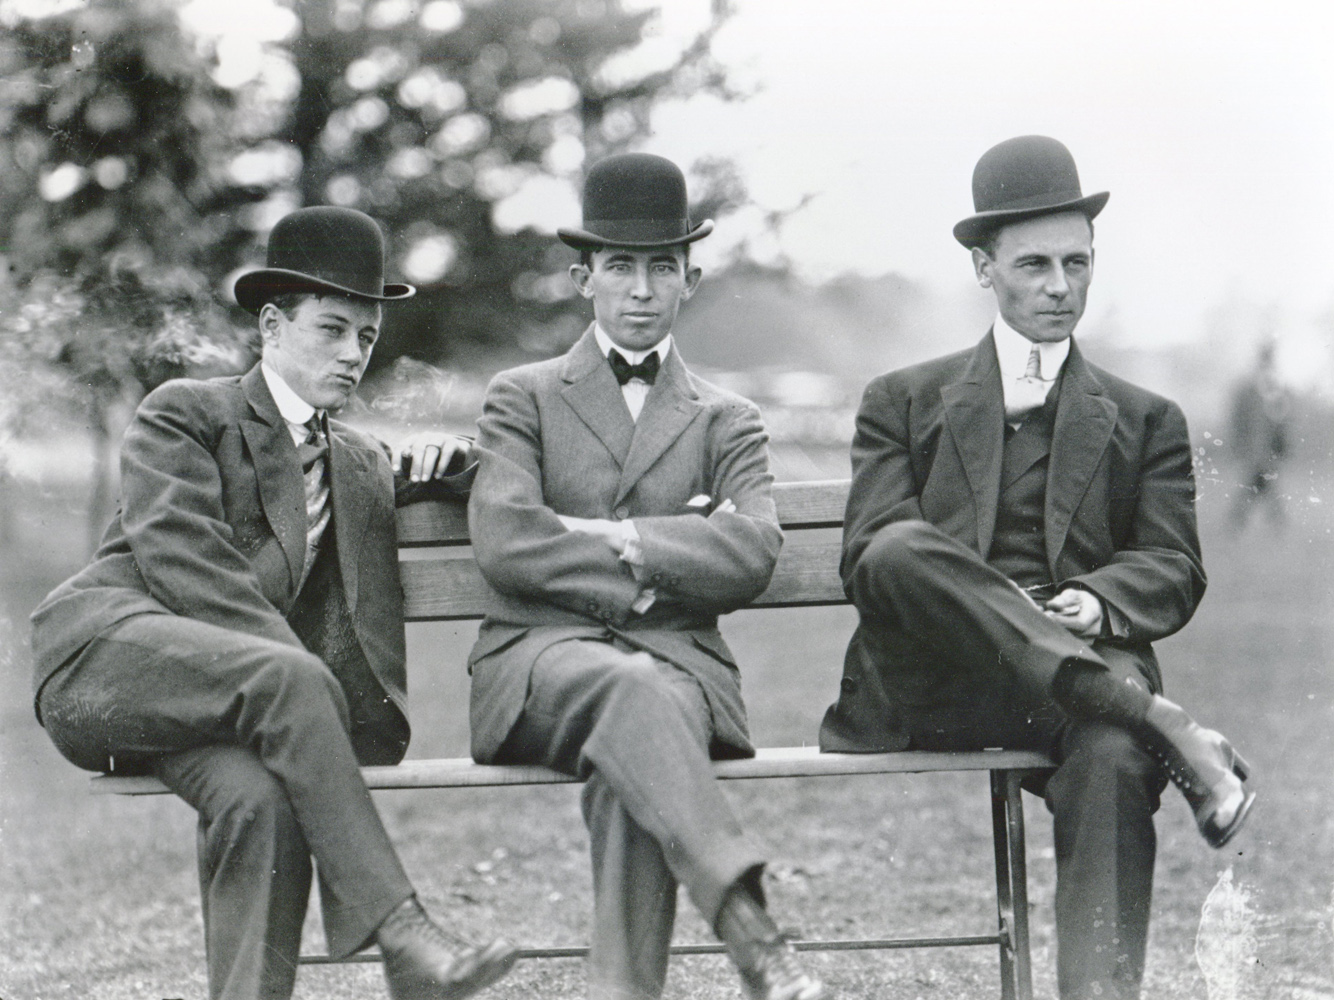 Frank O'Neill, Tommy Burns, and Willie Shaw (from left to right) (Keeneland Library Cook Collection/Museum Collection)